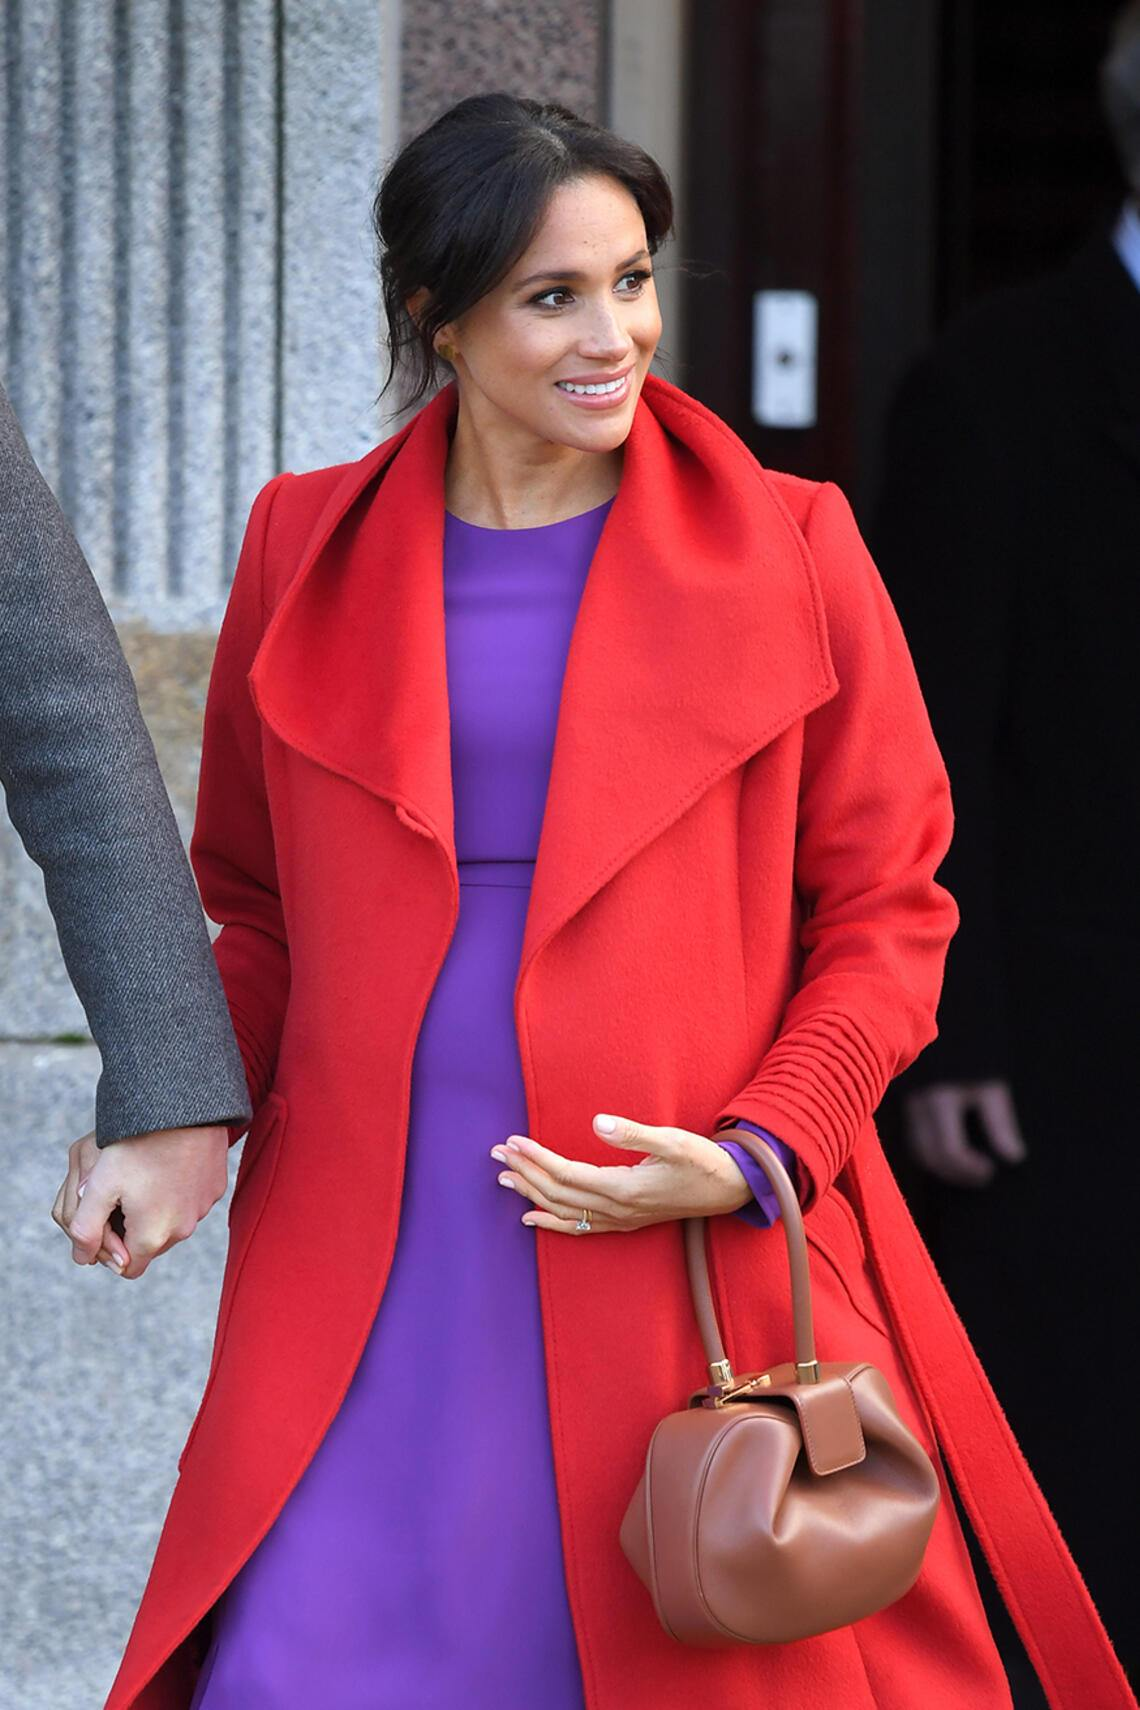 Meghan Markle in Rot und Lila